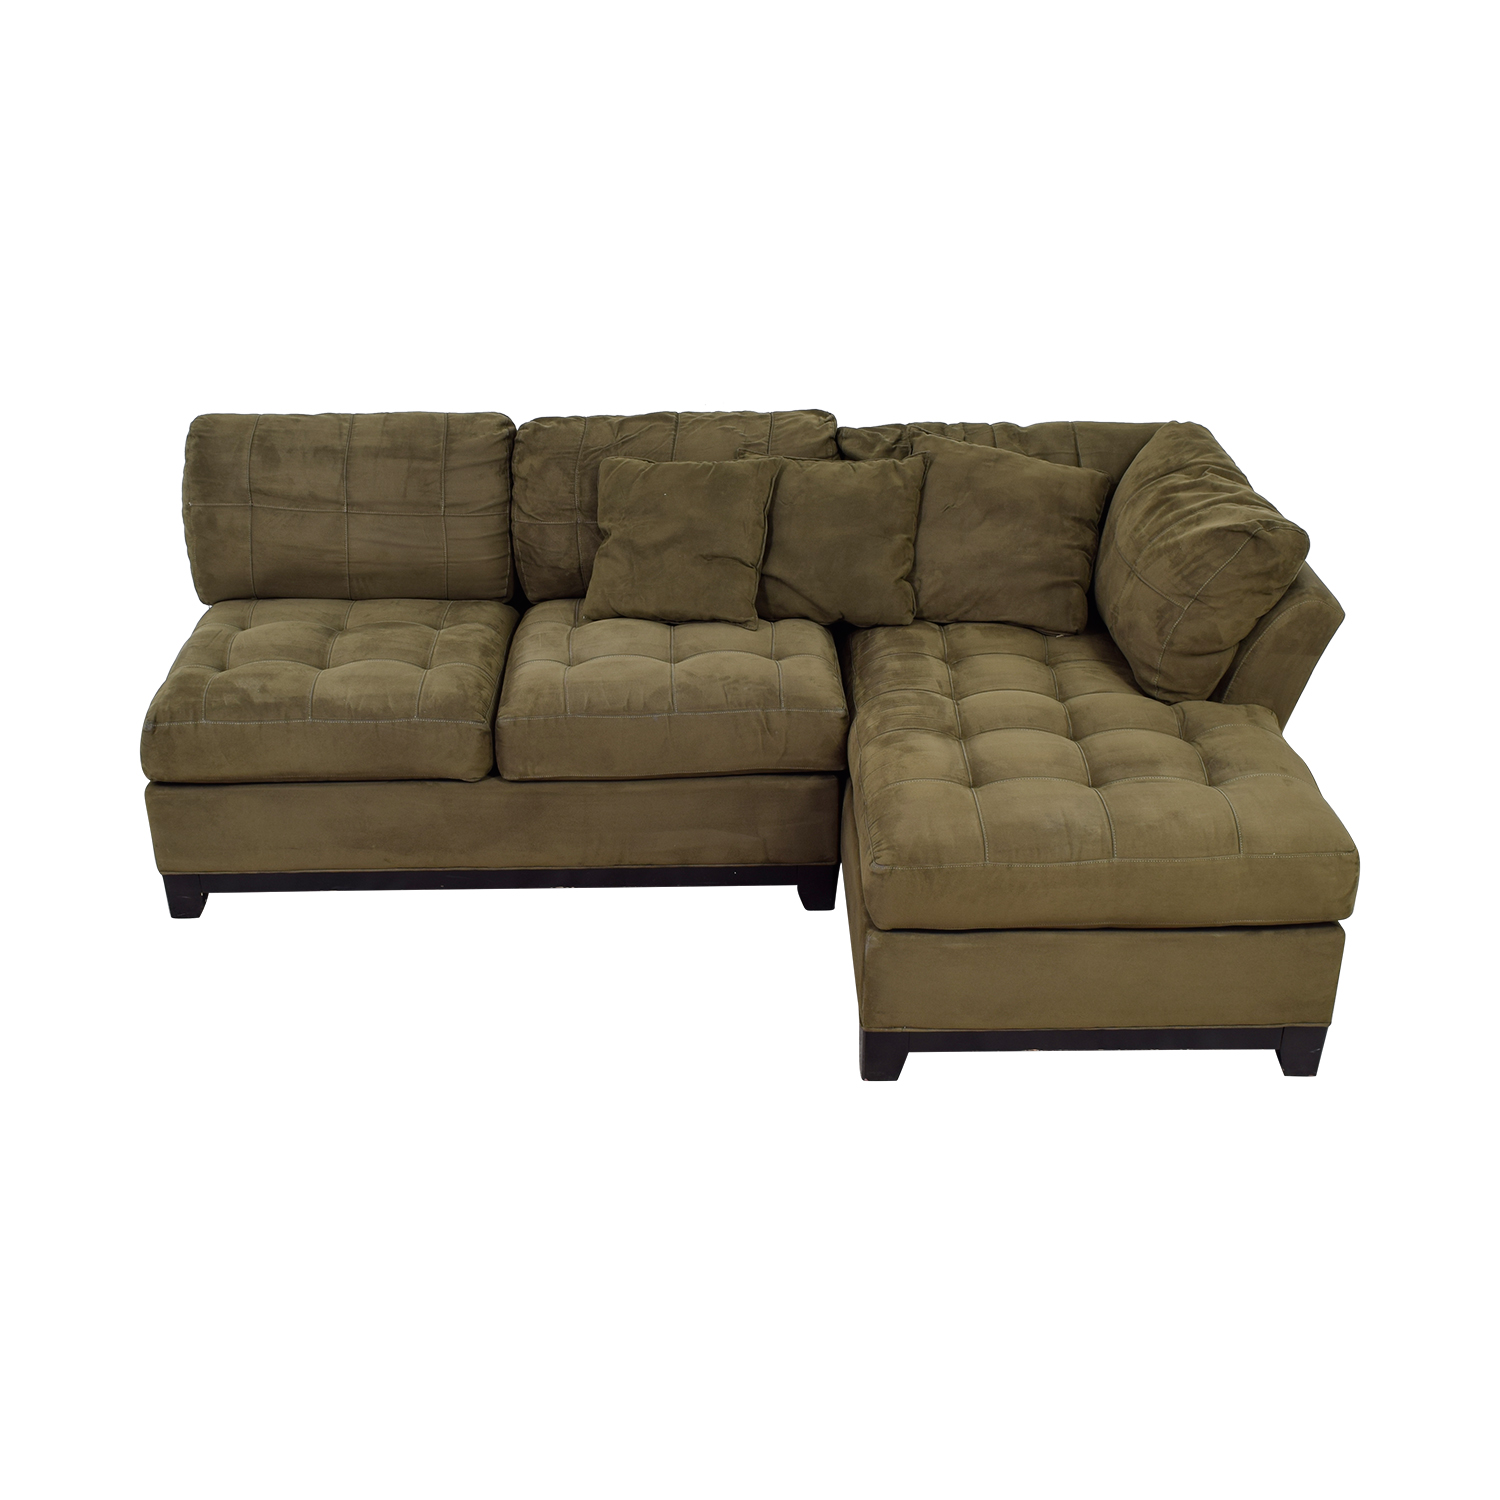 Raymour & Flanigan Raymour & Flanigan Brown Tufted Chaise Sectional on sale